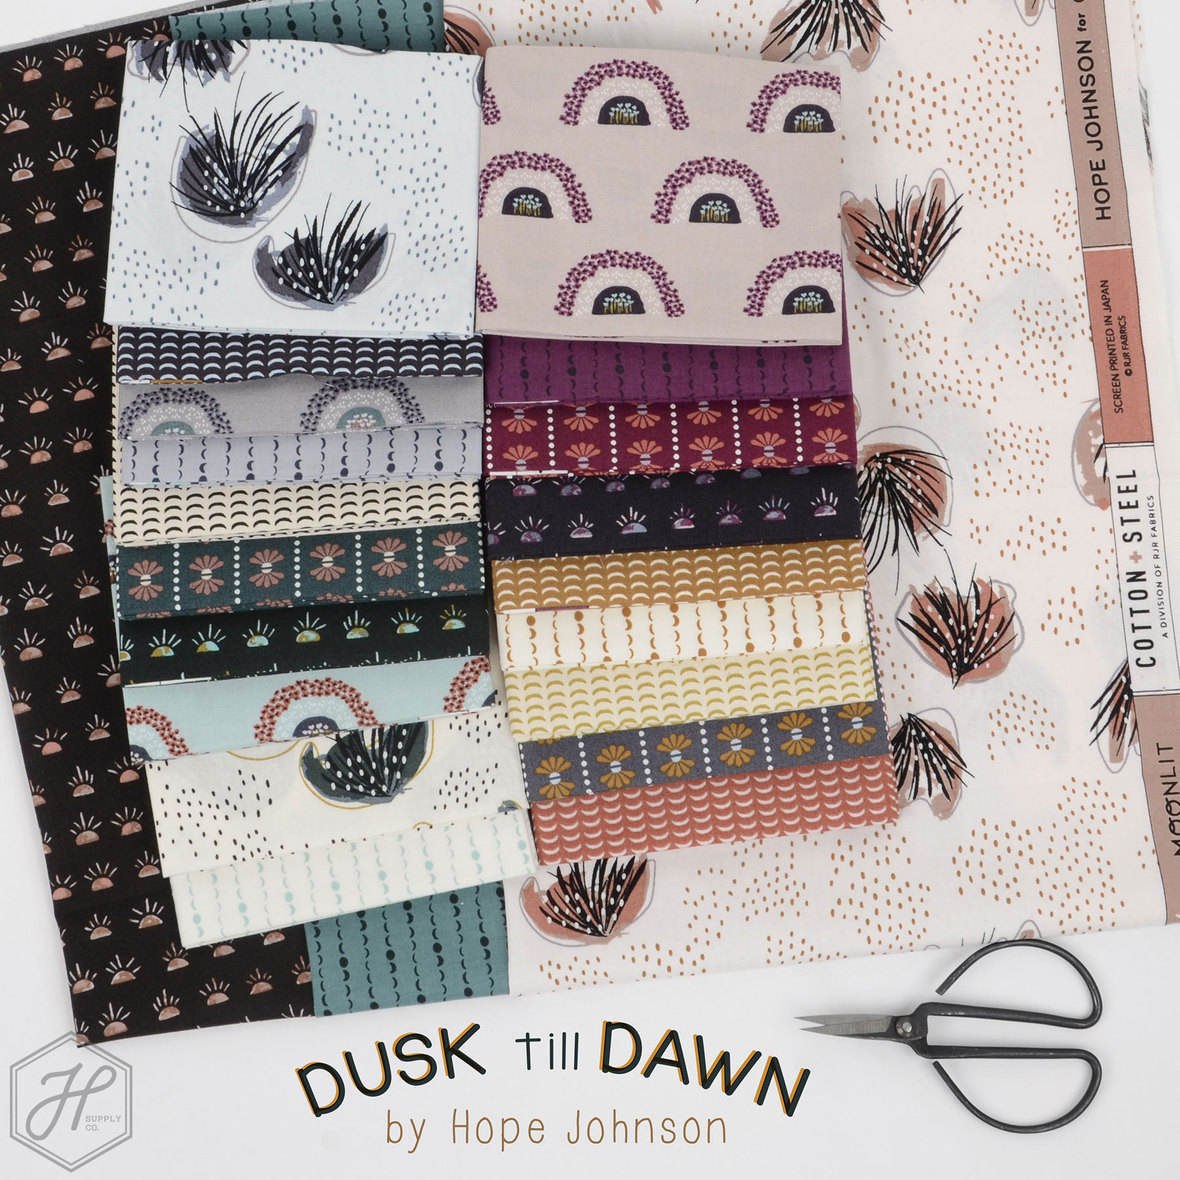 Dusk-til-Dawn-by-Hope-Johnson-fabric-at-Hawthorne-Supply-Co